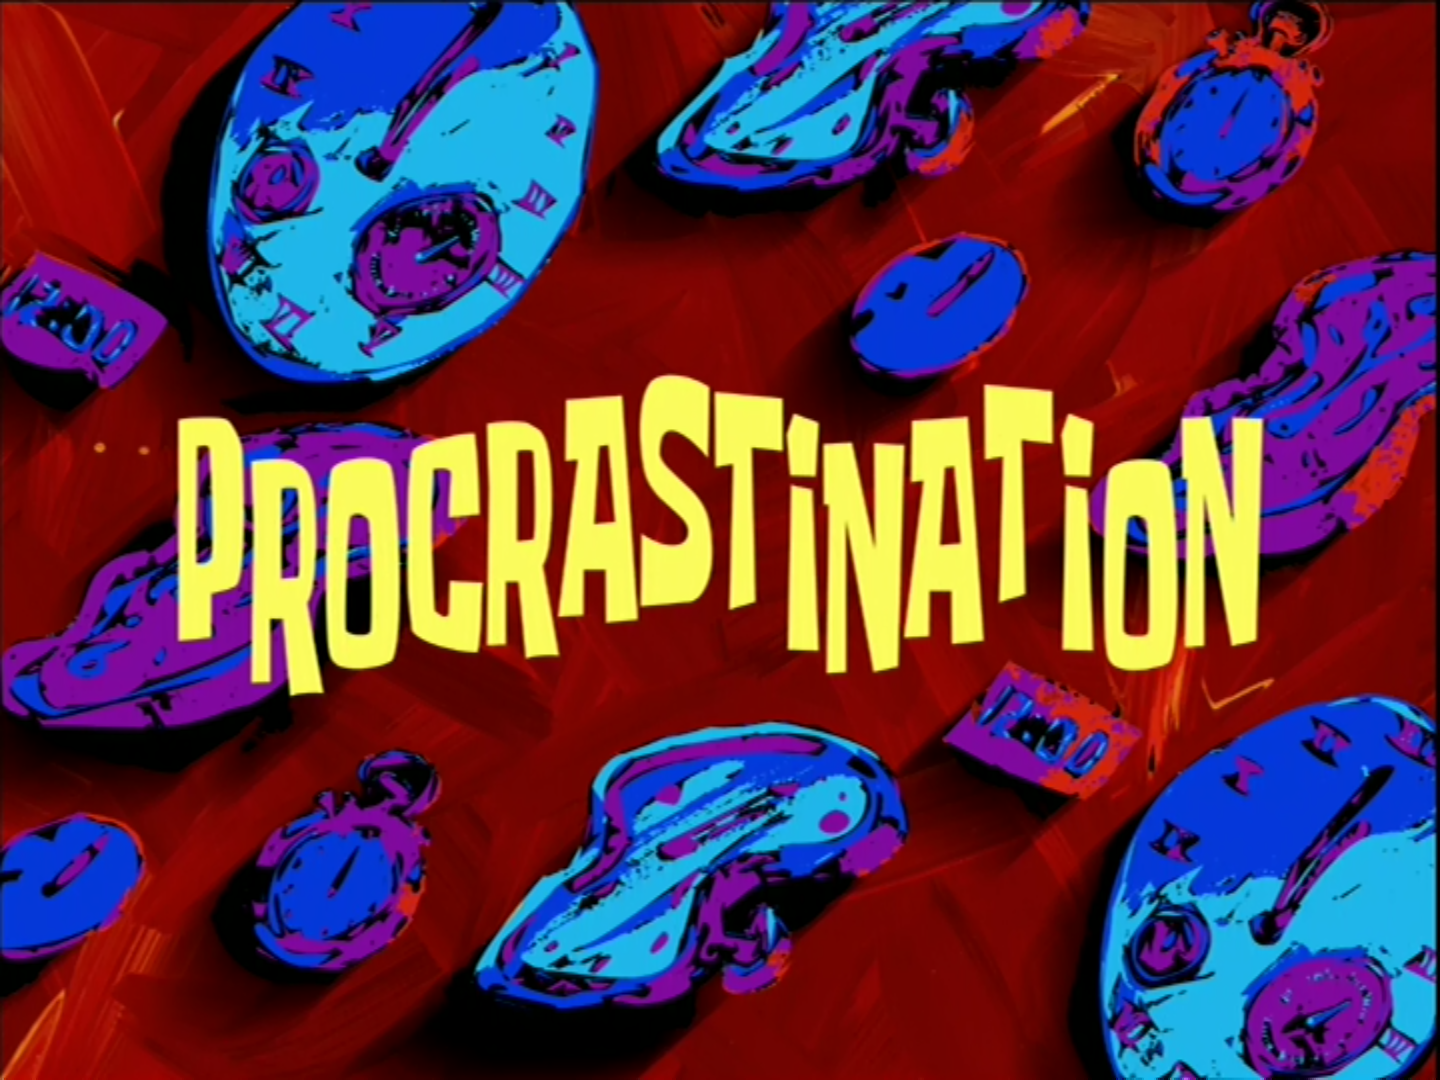 009 Procrastinationtranscript Encyclopedia Spongebobia Fandom Spongebob Writing Essay The Latestcb201806220 Gif Font For Hours Meme Rap Surprising House Full